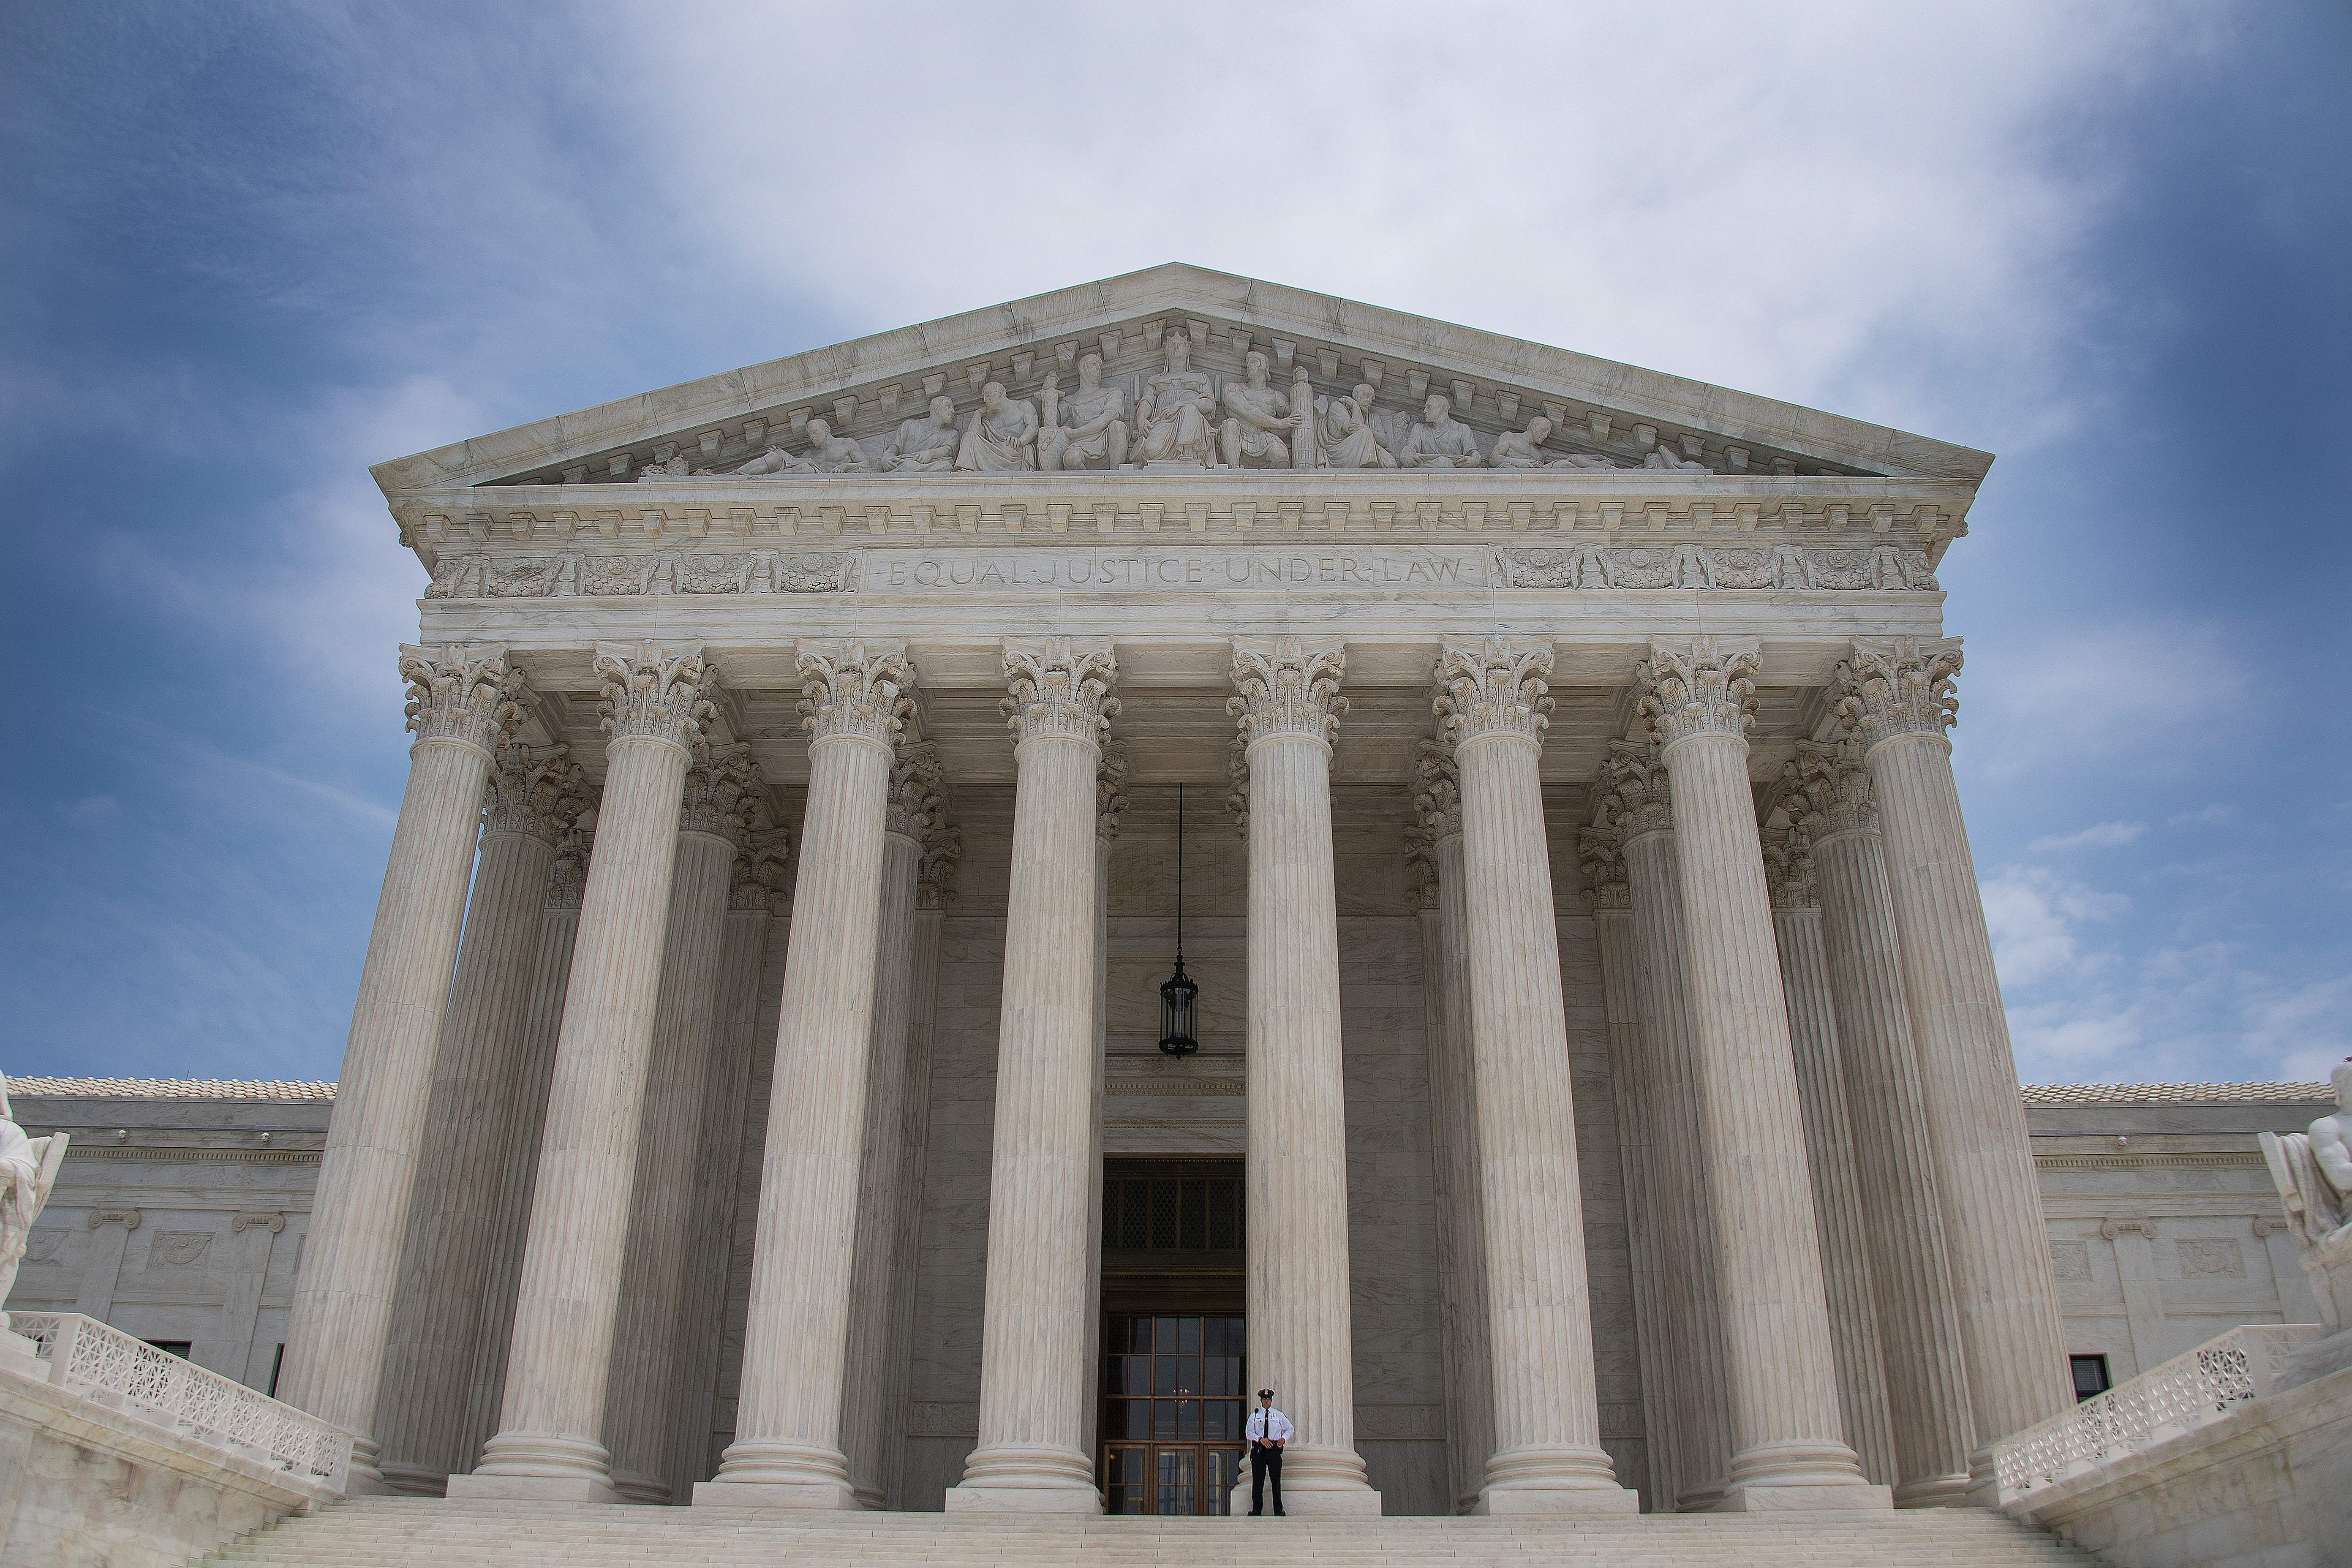 The US Supreme Court as seen on June 15, 2017. (Jim Watson/AFP/Getty Images)